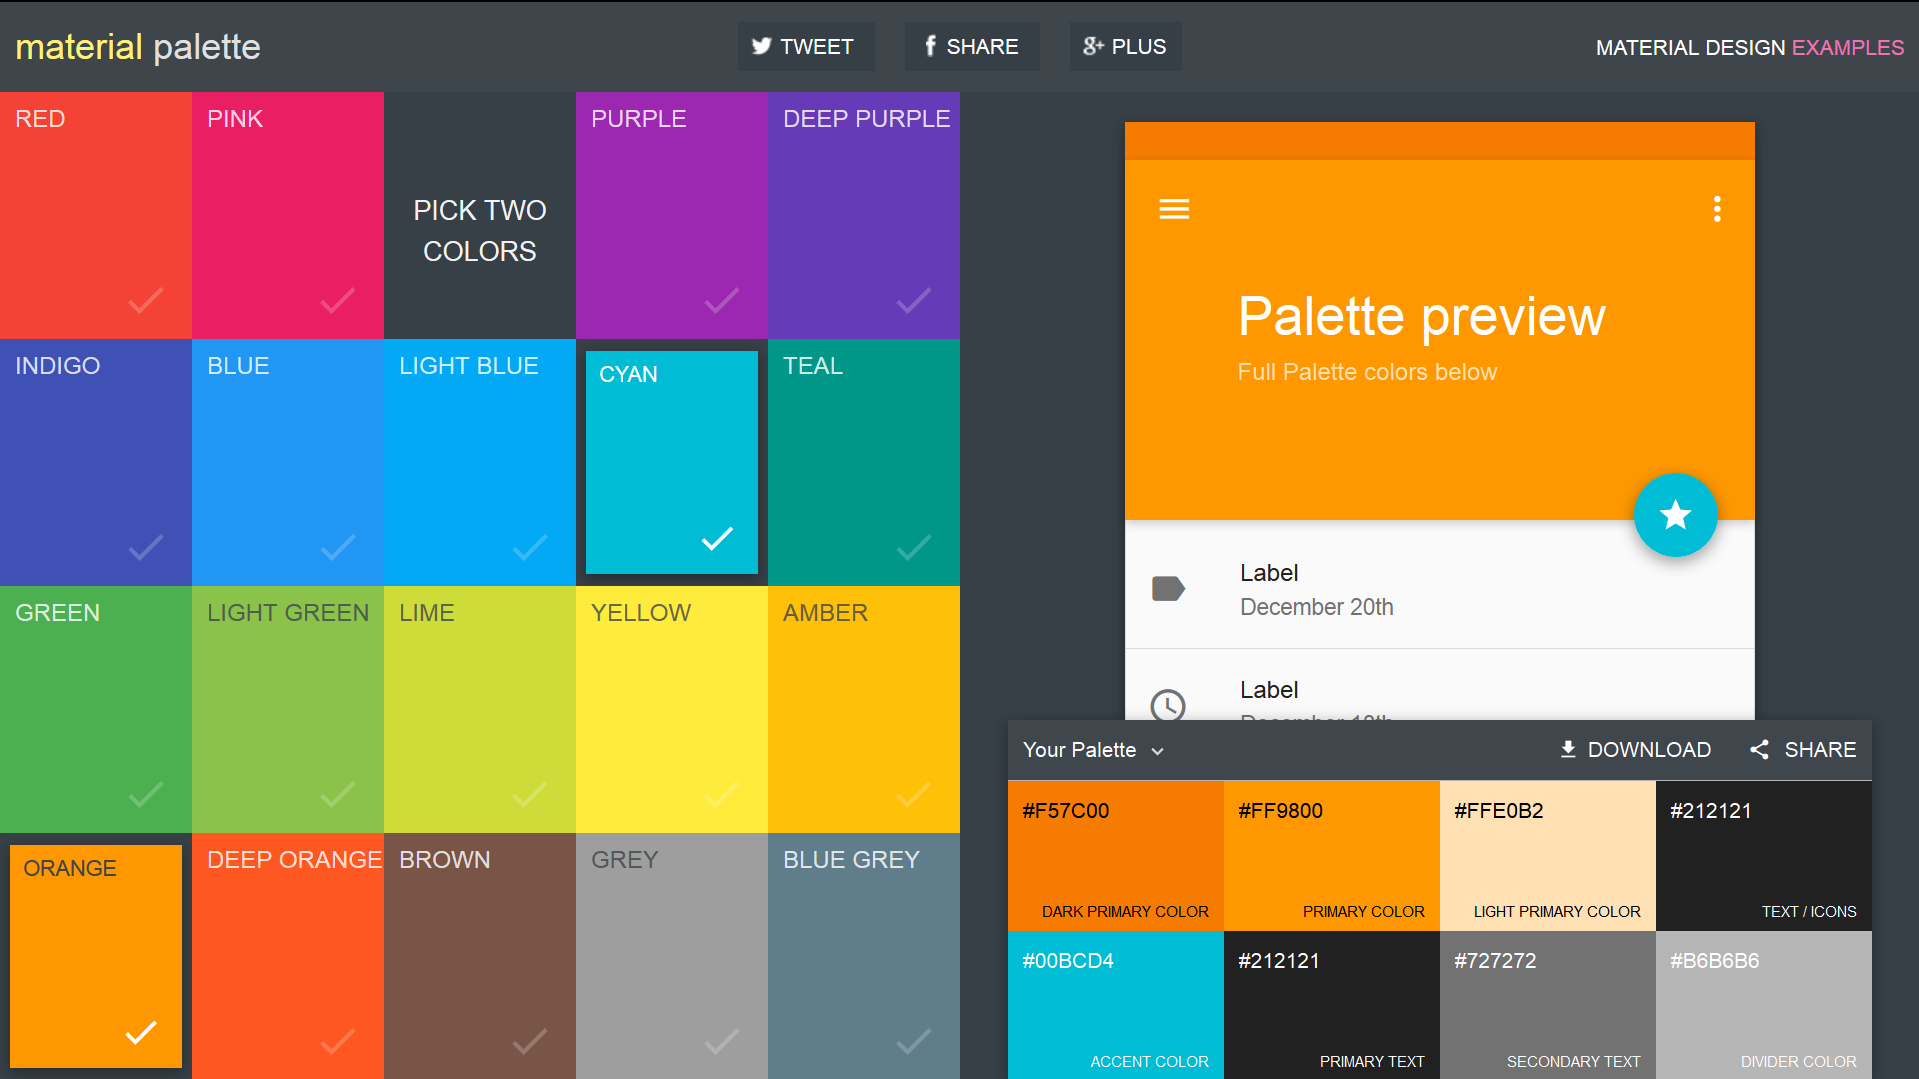 Materialpalette.com  material design color generator Material Palette  Preview